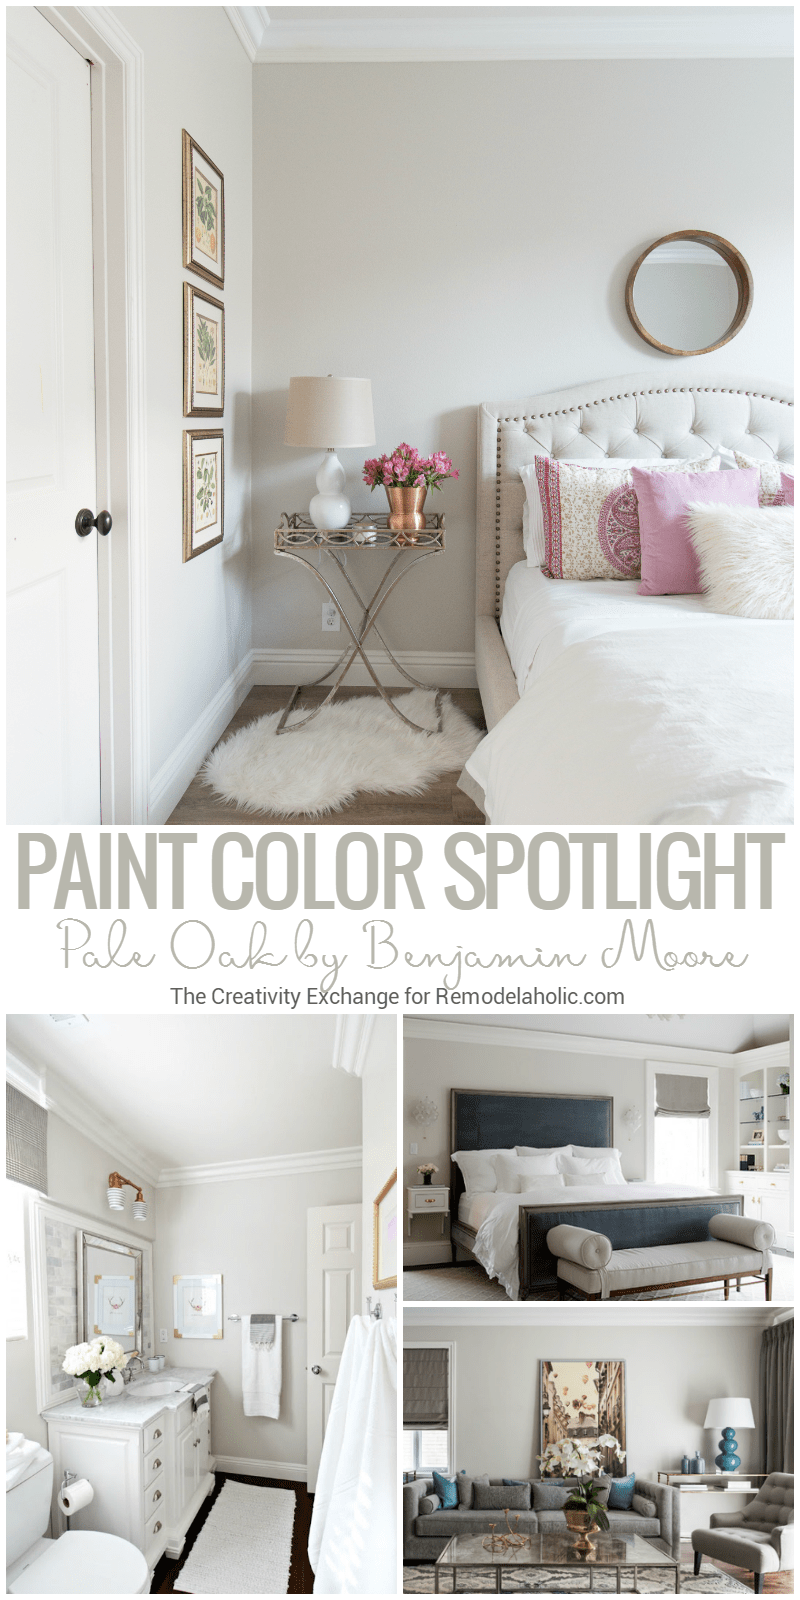 Remodelaholic | Color Spotlight: Benjamin Moore Pale Oak